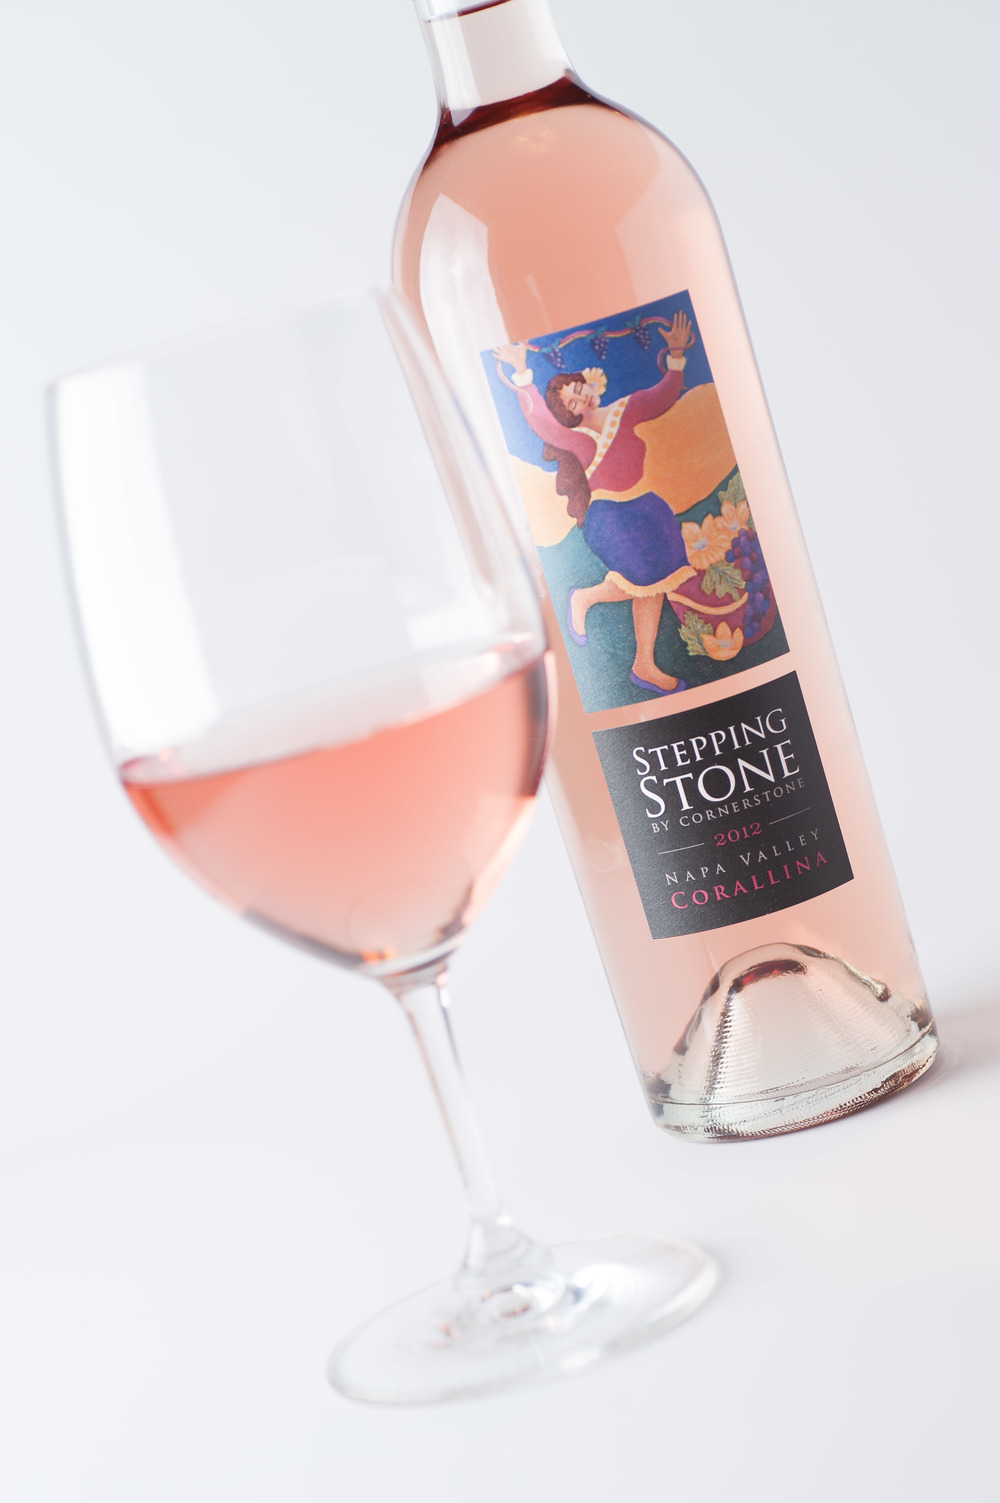 2012 Stepping Stone by Cornerstone Corallina Napa Valley Syrah Rosé